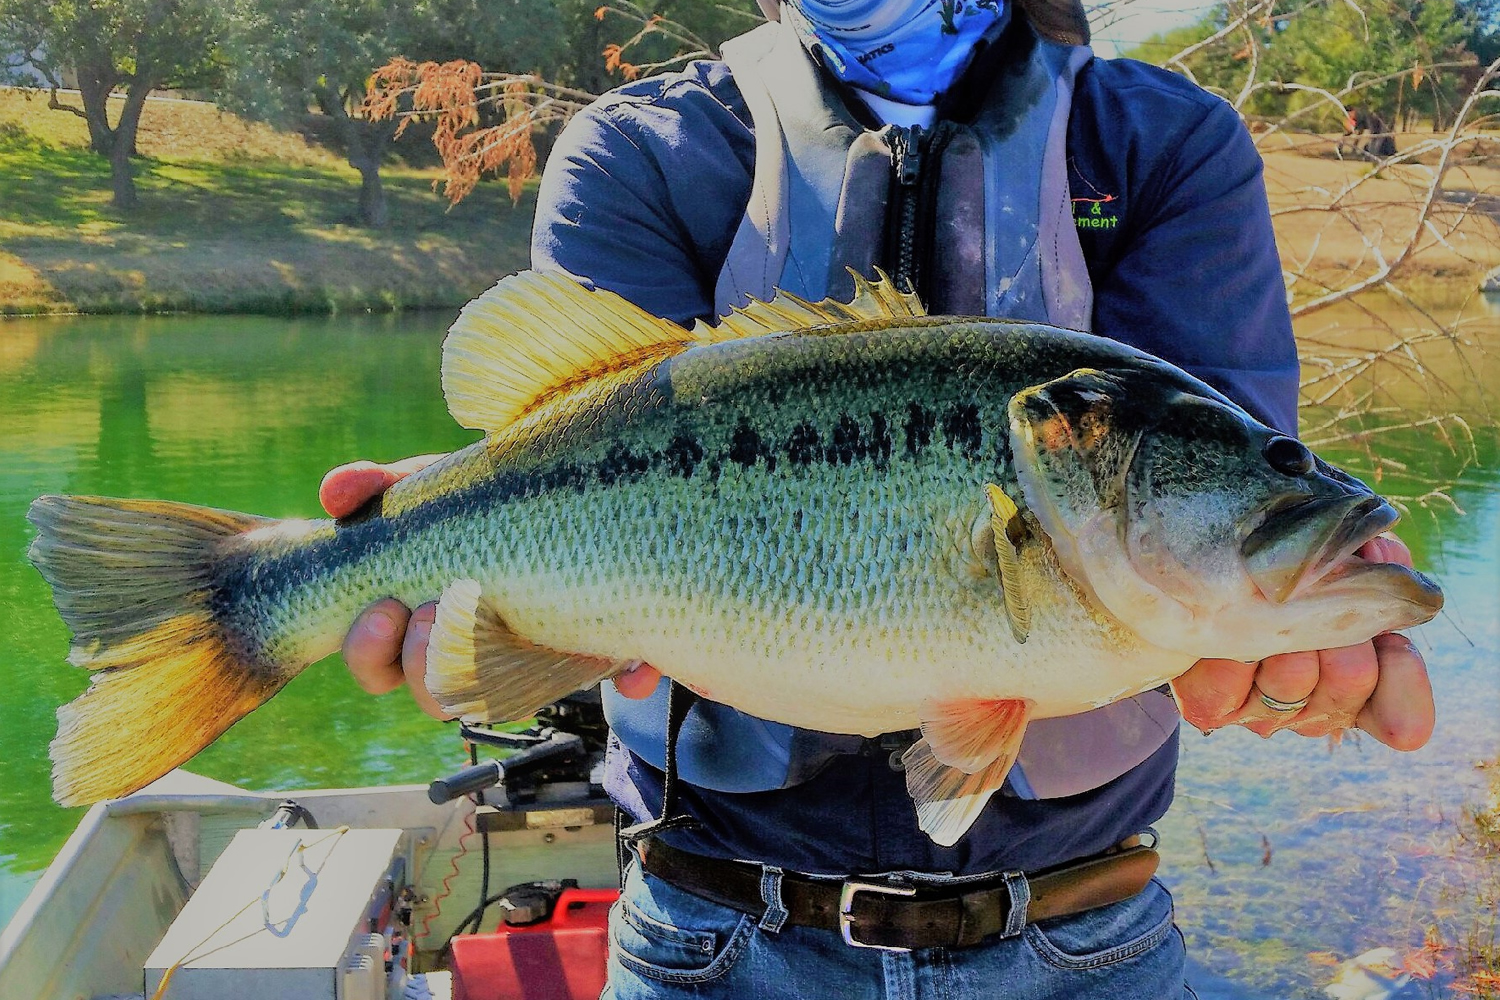 Largemouth bass stocked in private lakes require abundant forage fish